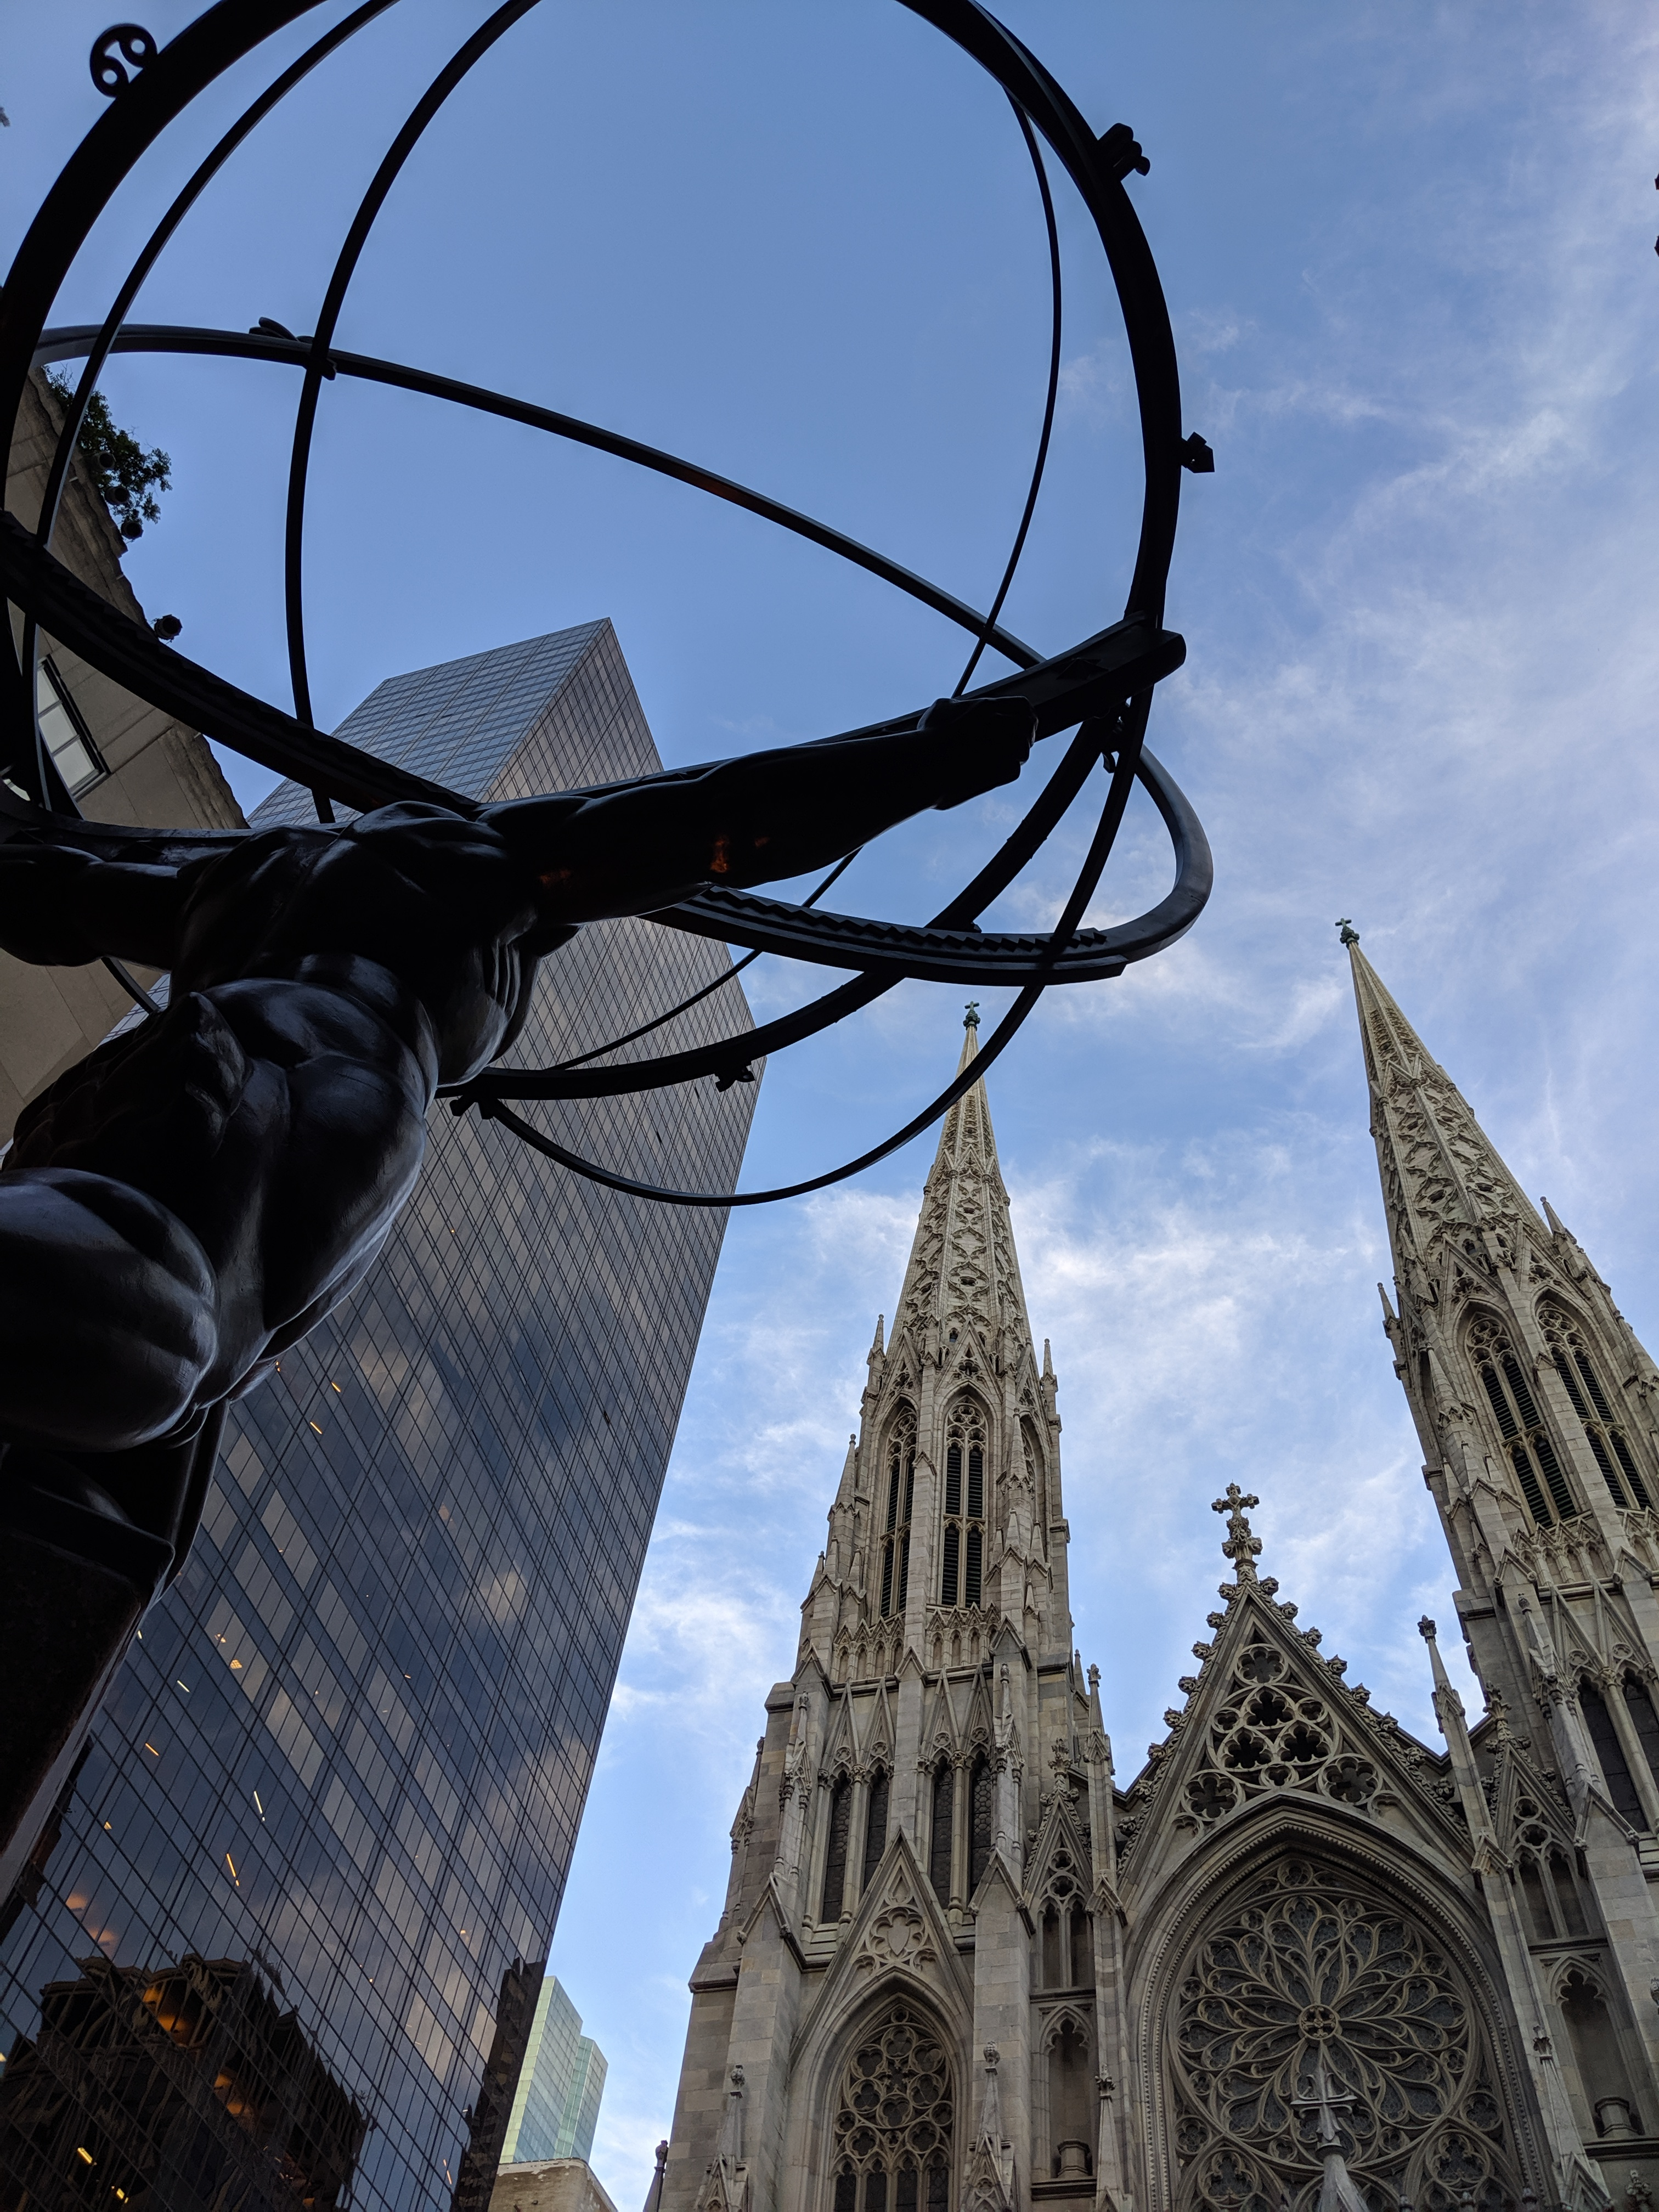 St. Patrick's Cathedral and Lee Lawrie's Atlas